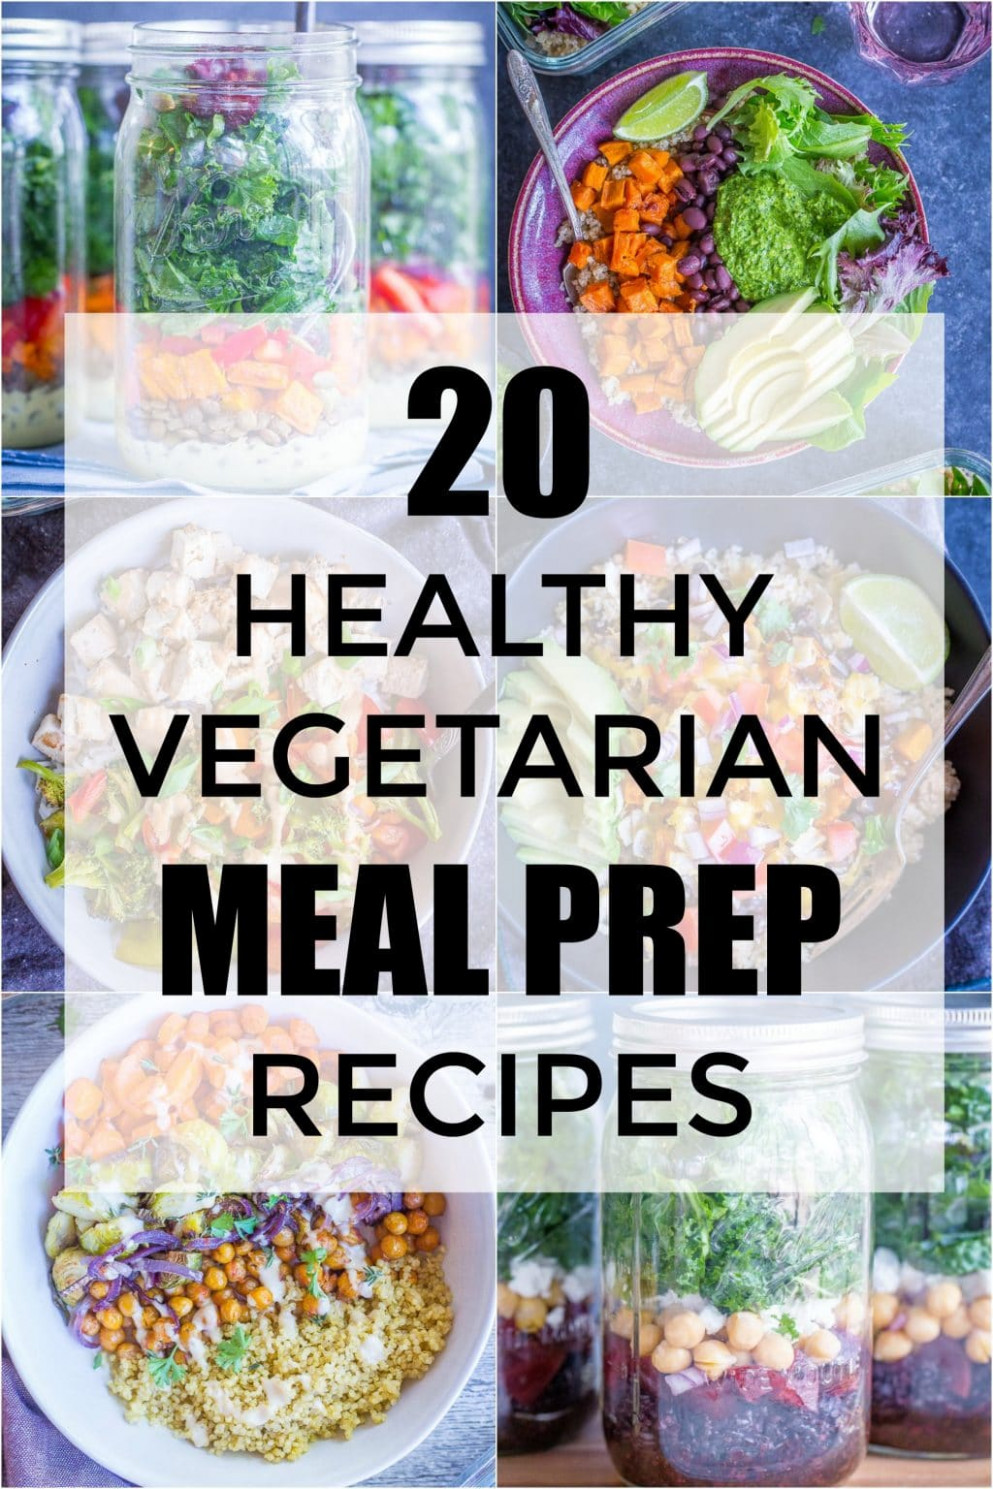 20 Healthy Vegetarian Meal Prep Recipes - She Likes Food - healthy vegetarian recipes youtube